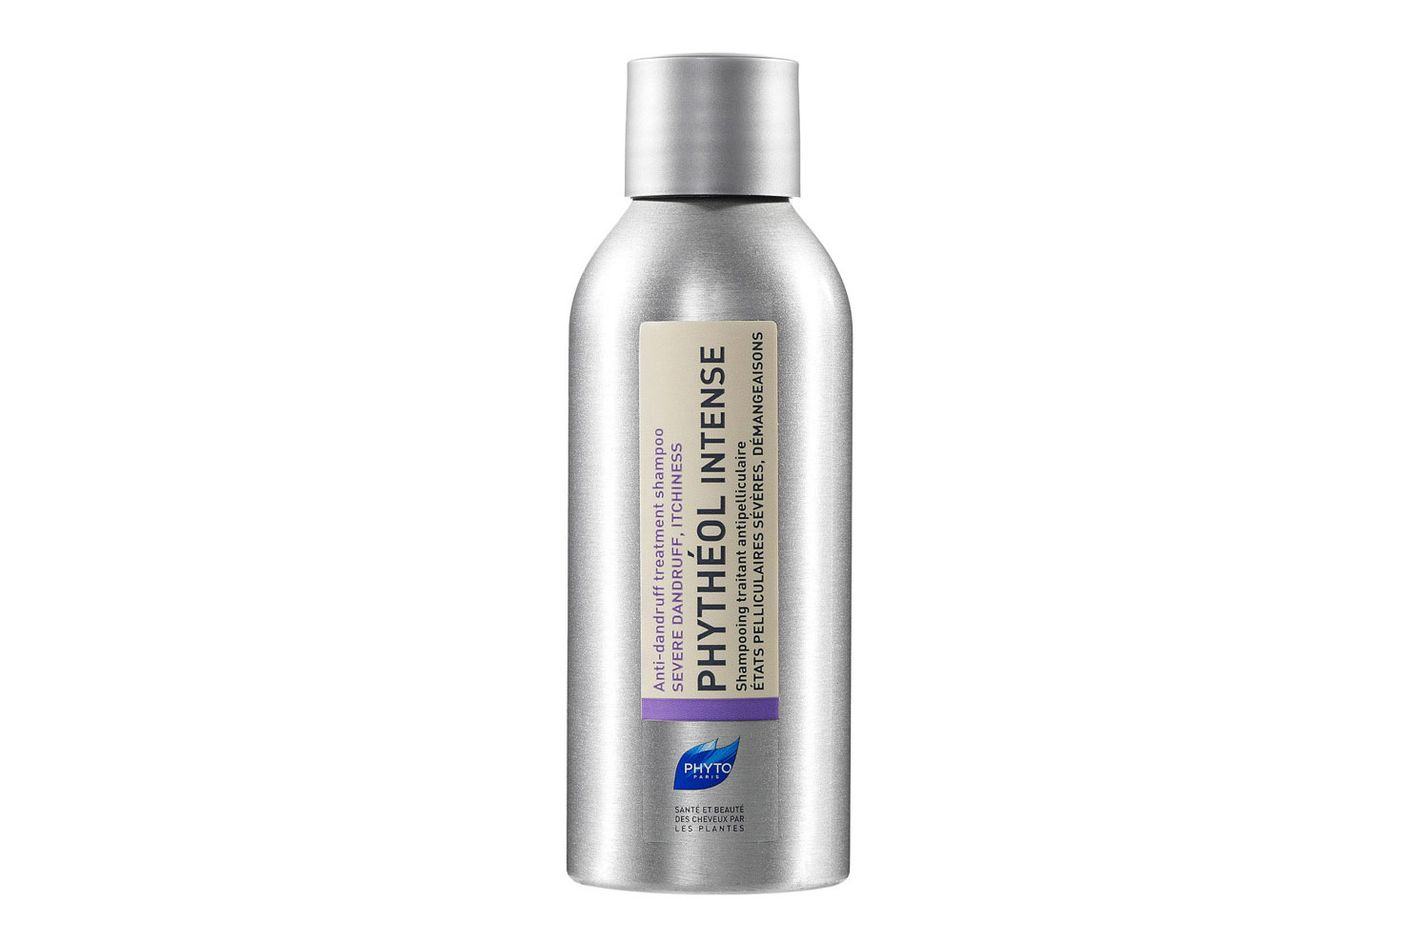 Phyto Dandruff Treatment Shampoo